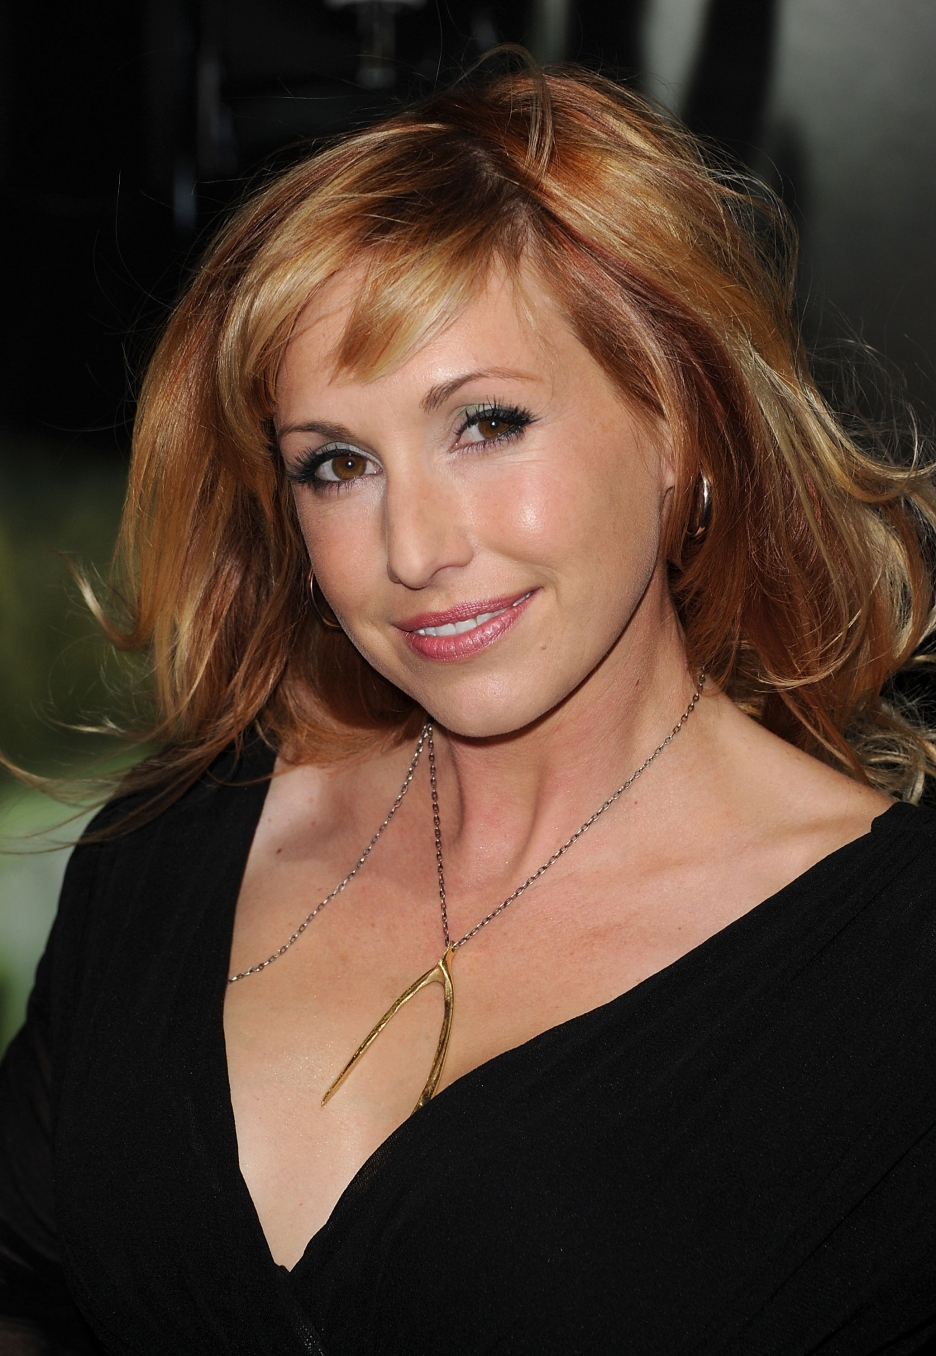 Kari Byron   Kari Byron Photo  25787335    Fanpop fanclubs